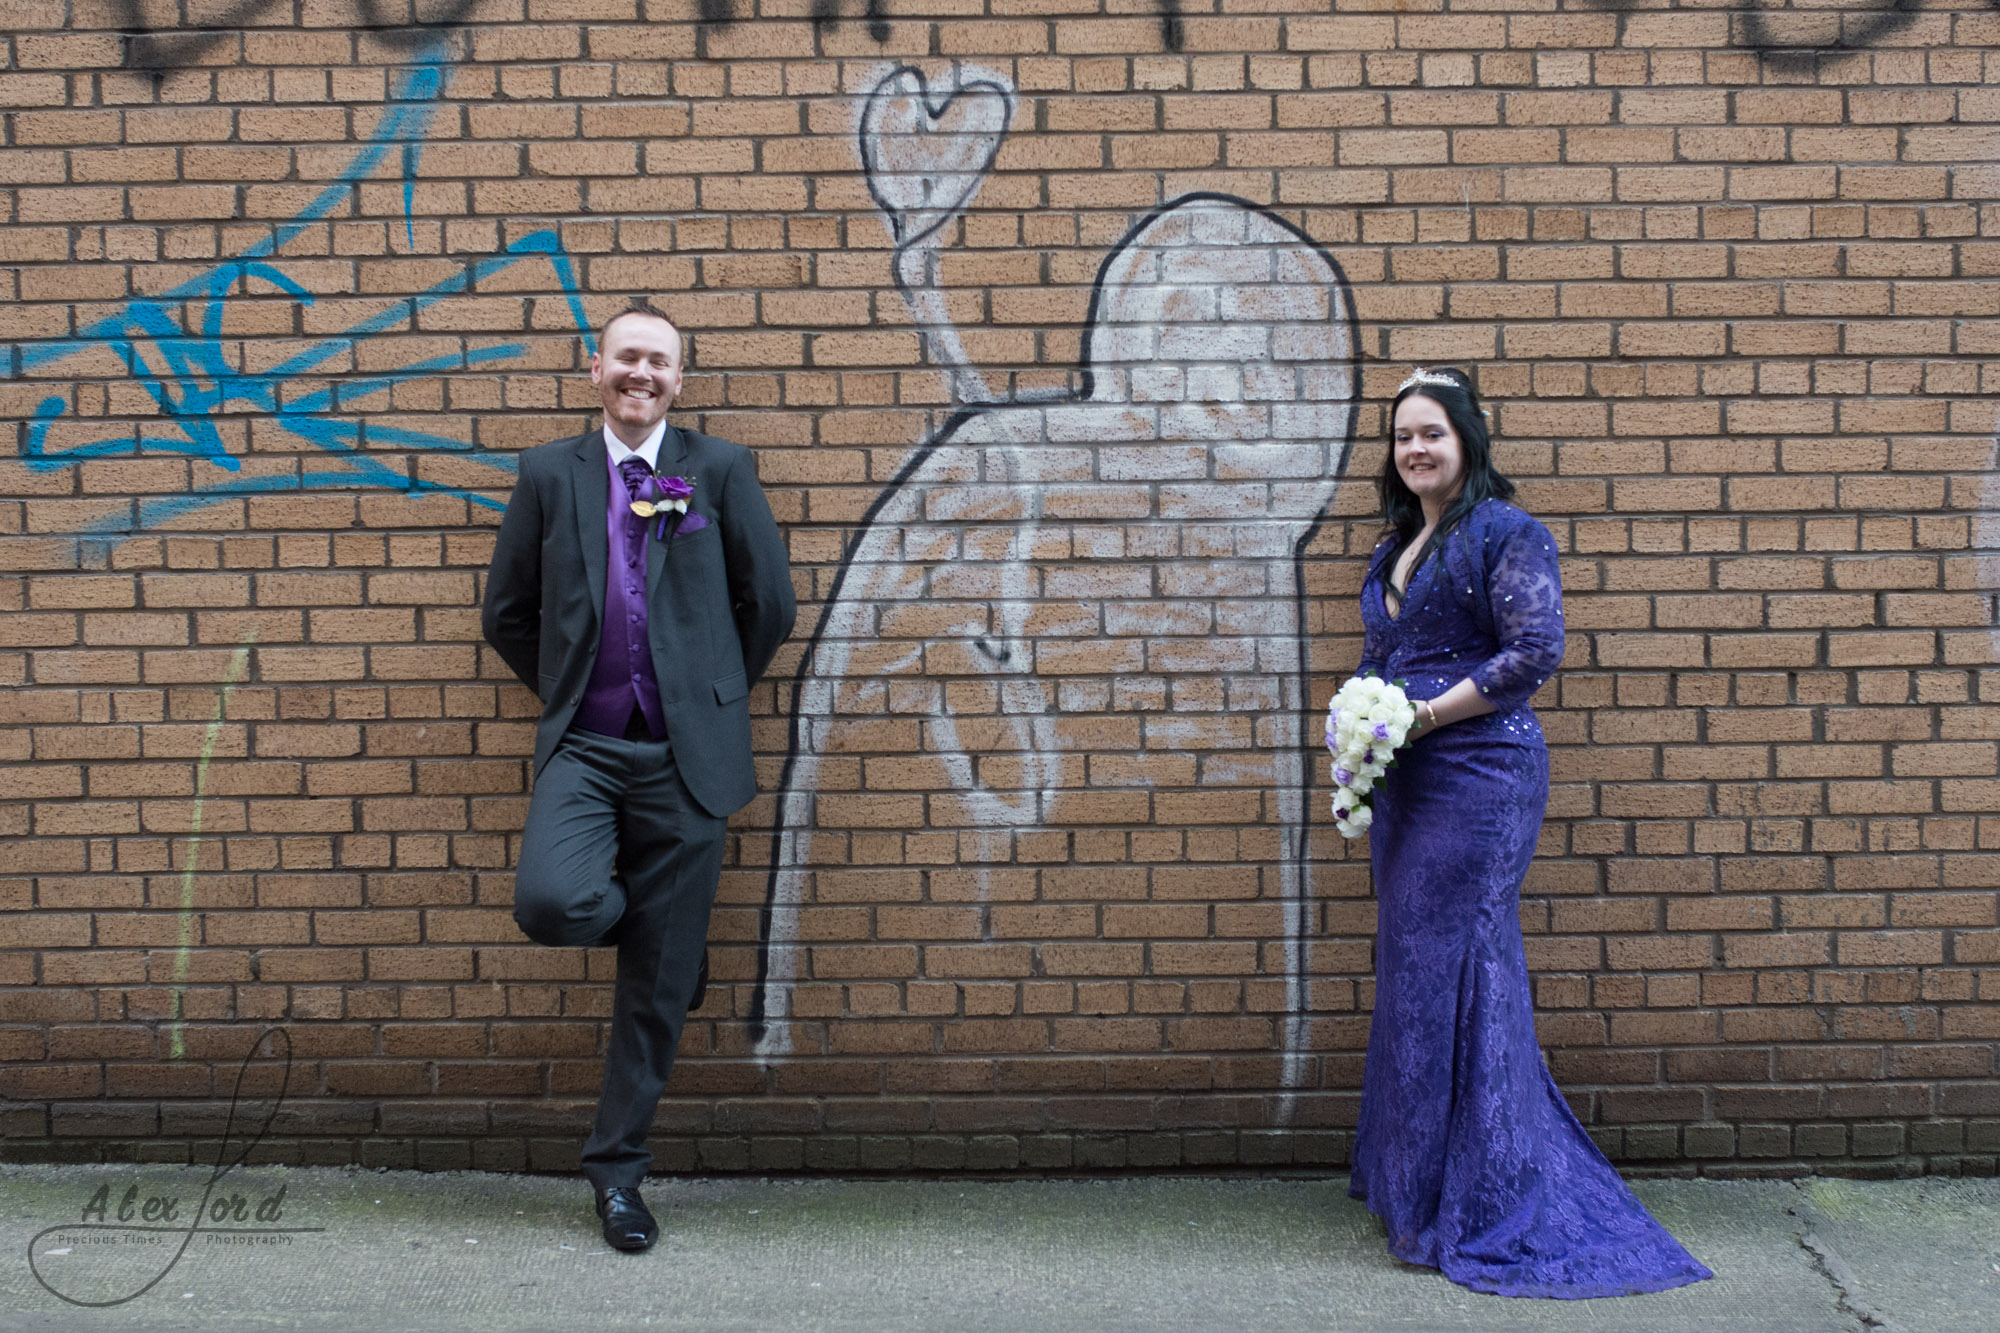 the bride and groom, bride dressed in a purple dress, pose against a red brick wall for their wedding photography